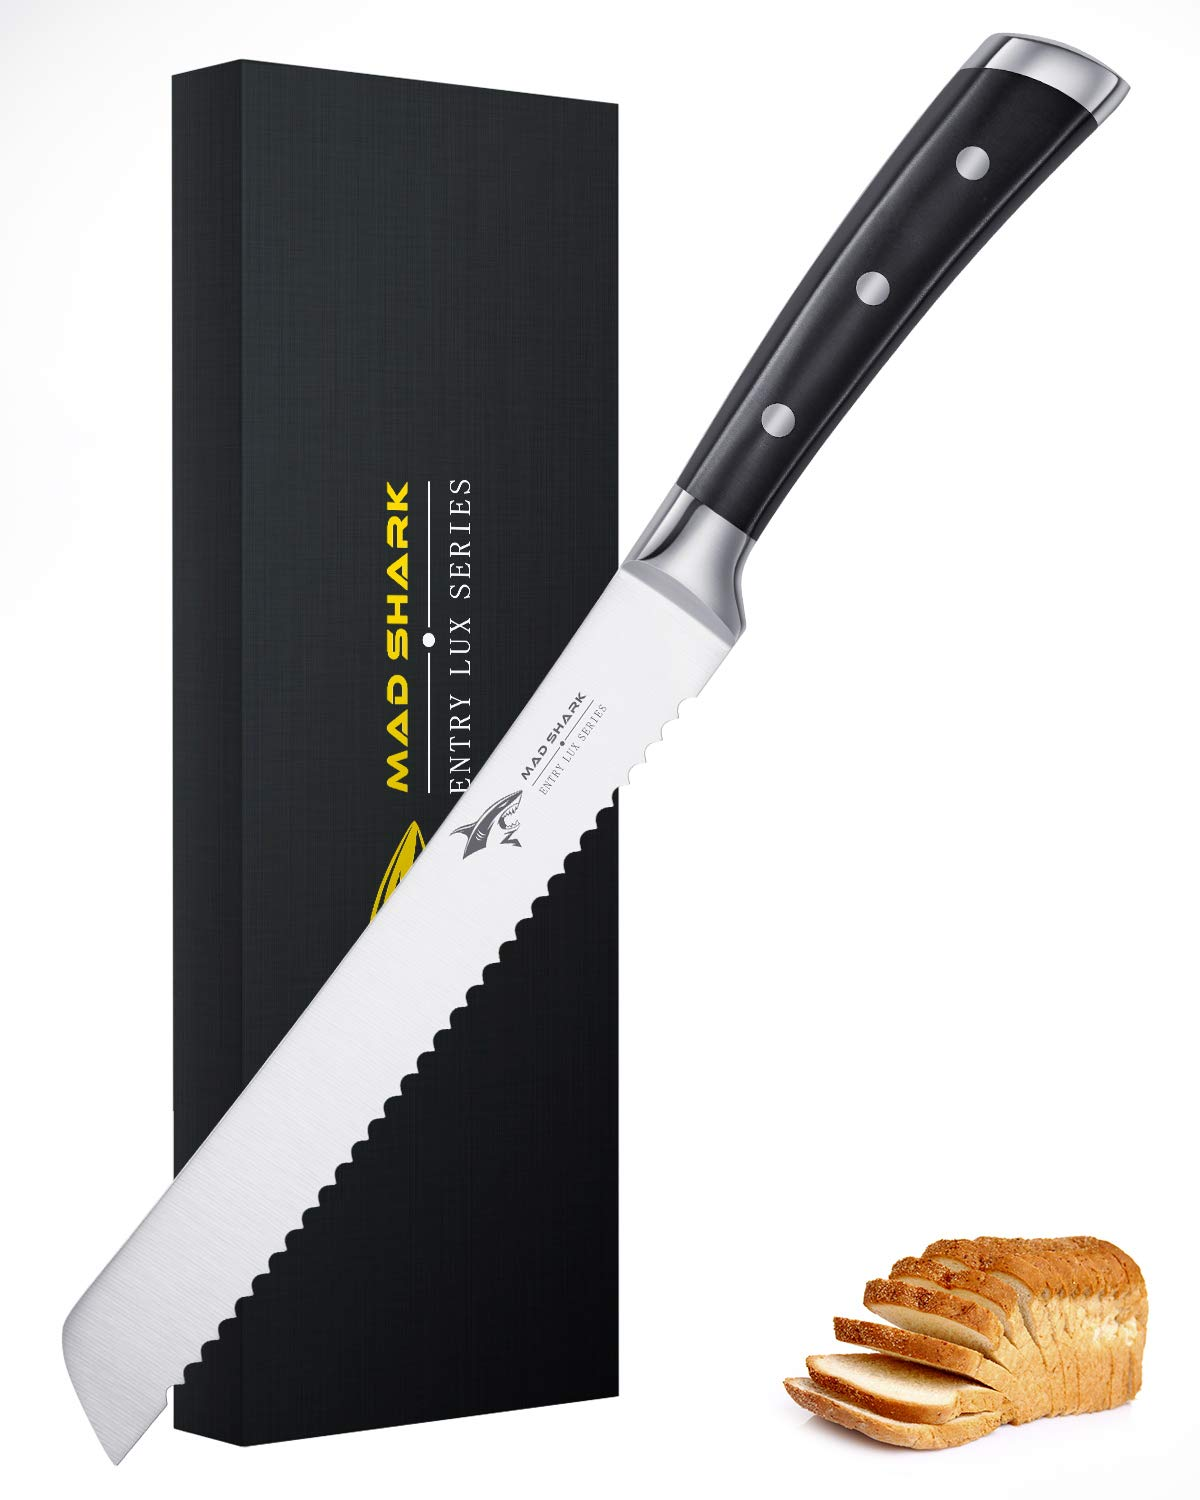 Bread Kinfe - MAD SHARK 8 Inch Pro Serrated Bread Cutter,German High Carbon Stainless Steel Cake Knife with Ergonomic Handle, Ultra Sharp Baker's Knife by MAD SHARK